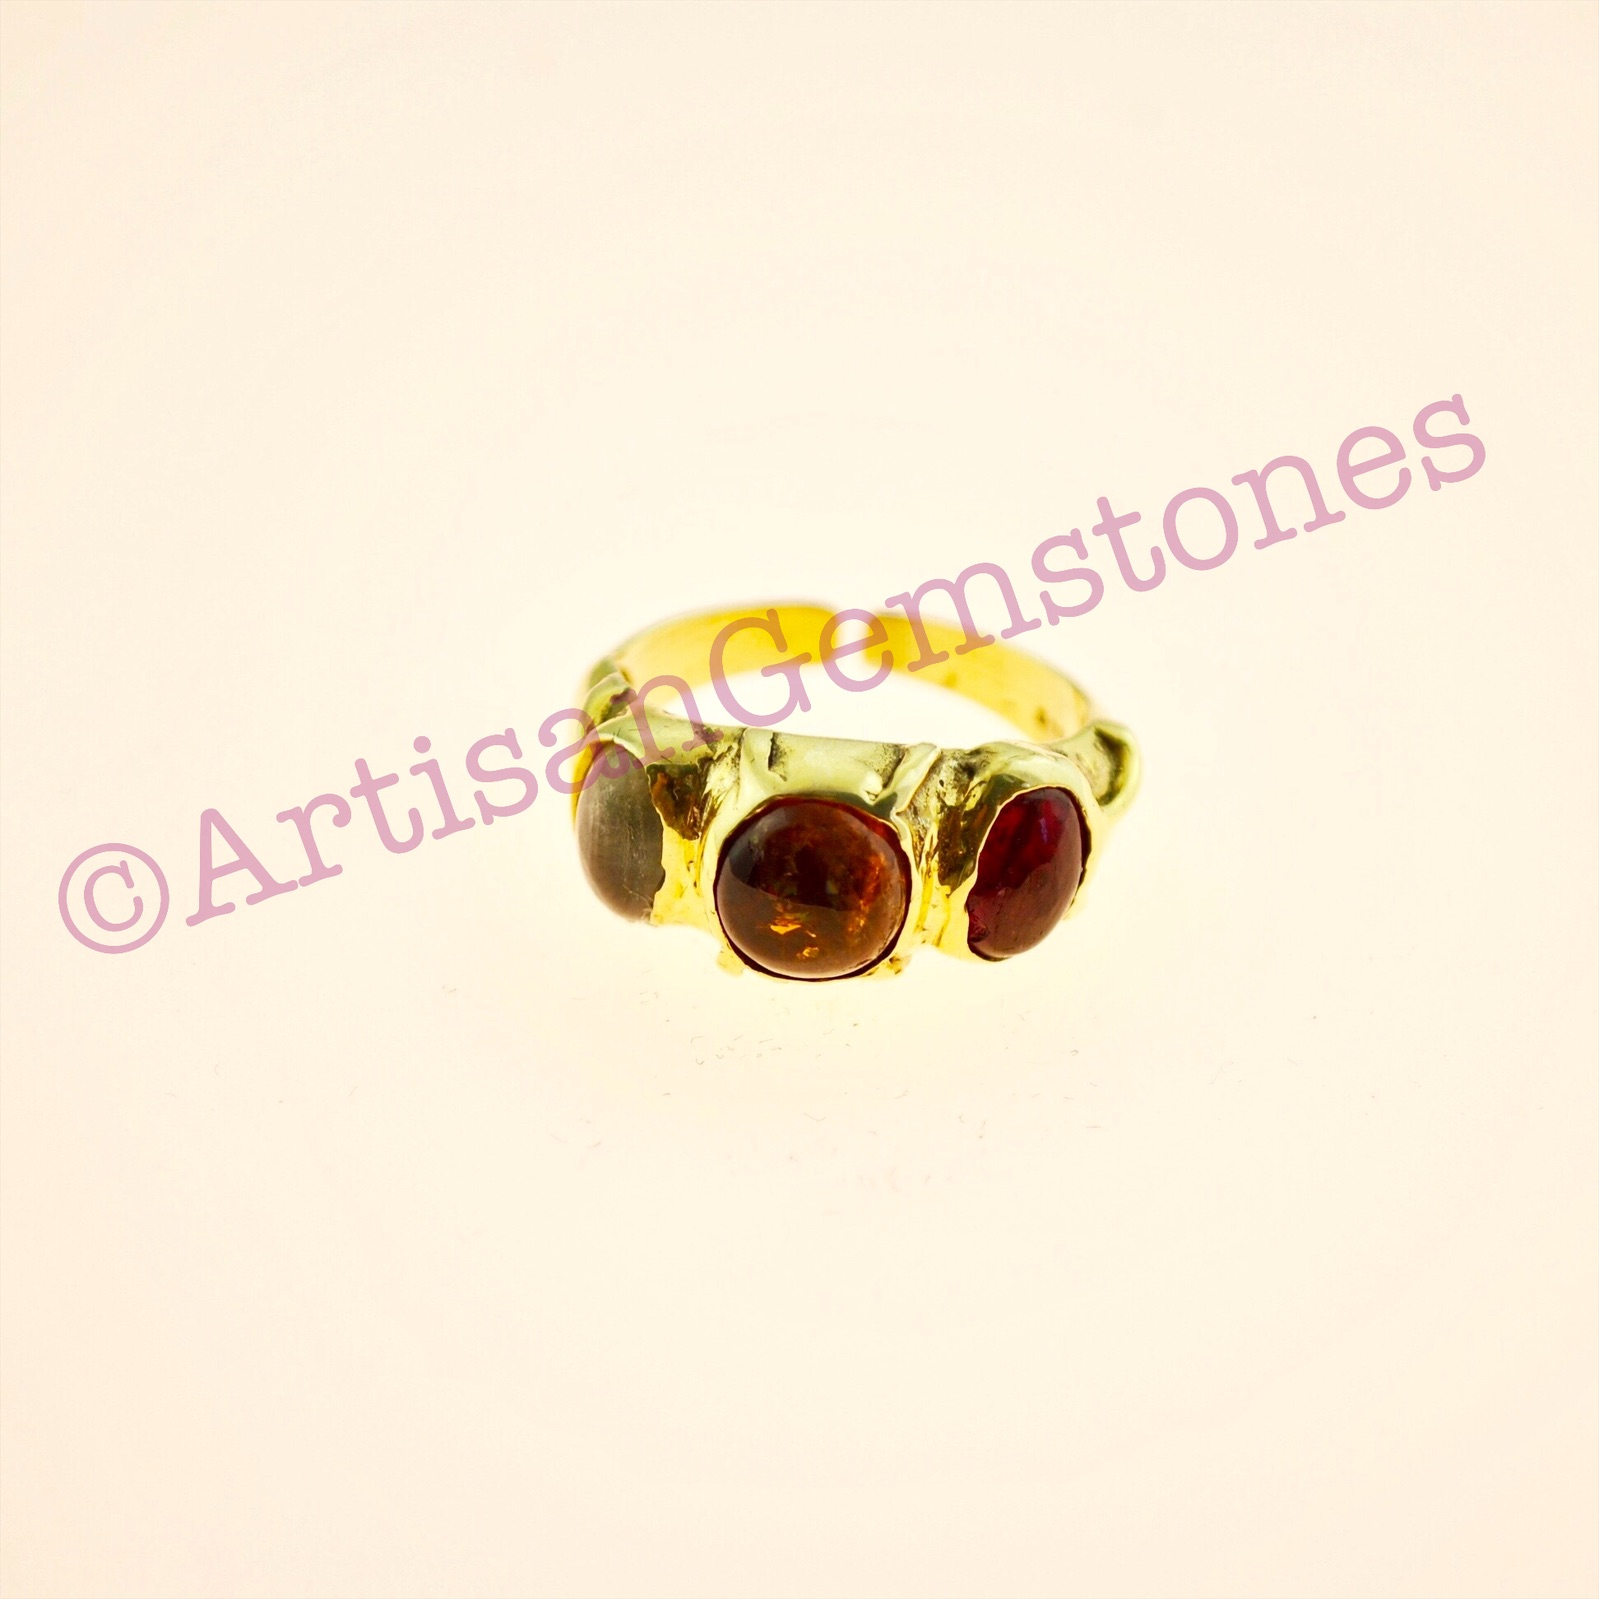 Triple Tourmaline ring in 925 silver 22k Gold vermeil in adjustable size